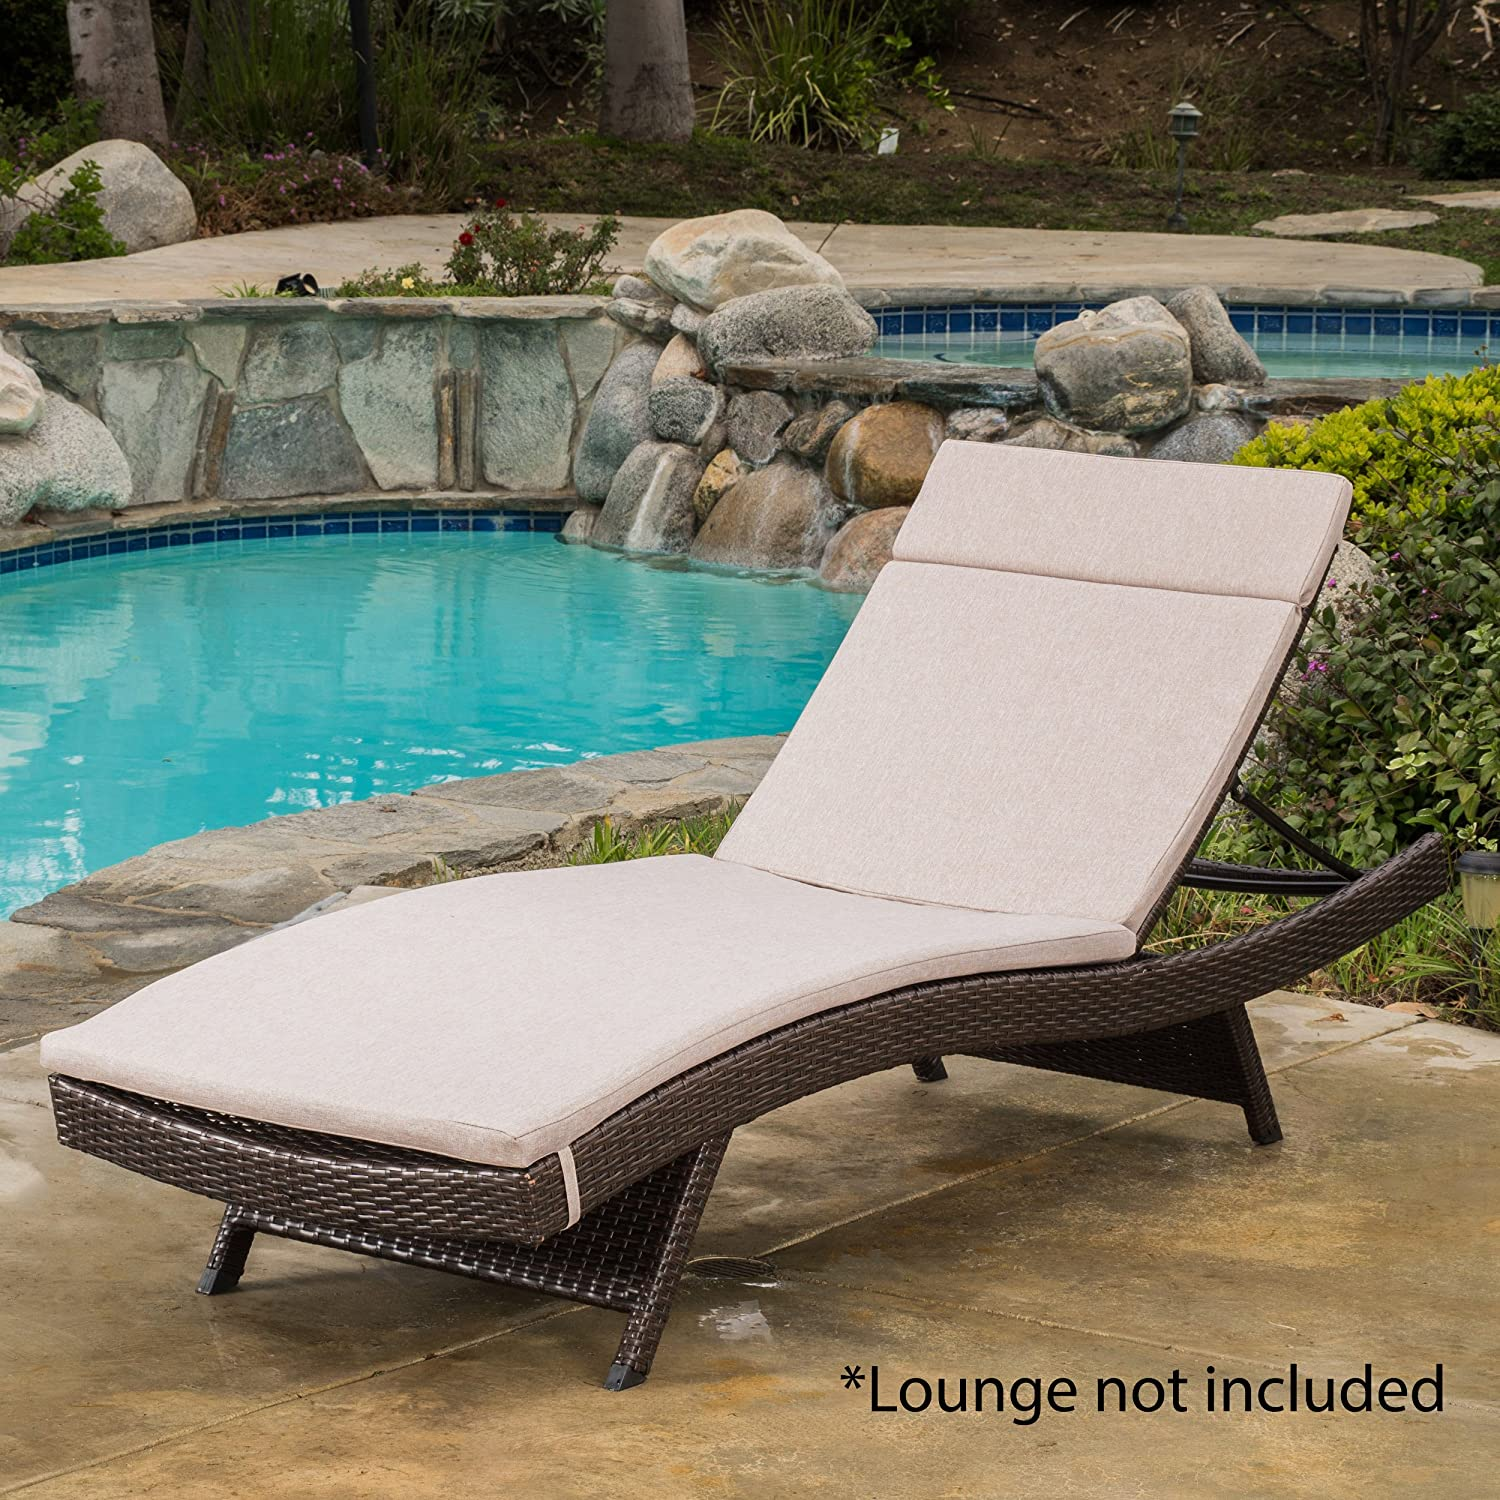 Beige Christopher Knight Home 300981 Sienna CKH Outdoor Chaise Lounge Cushion